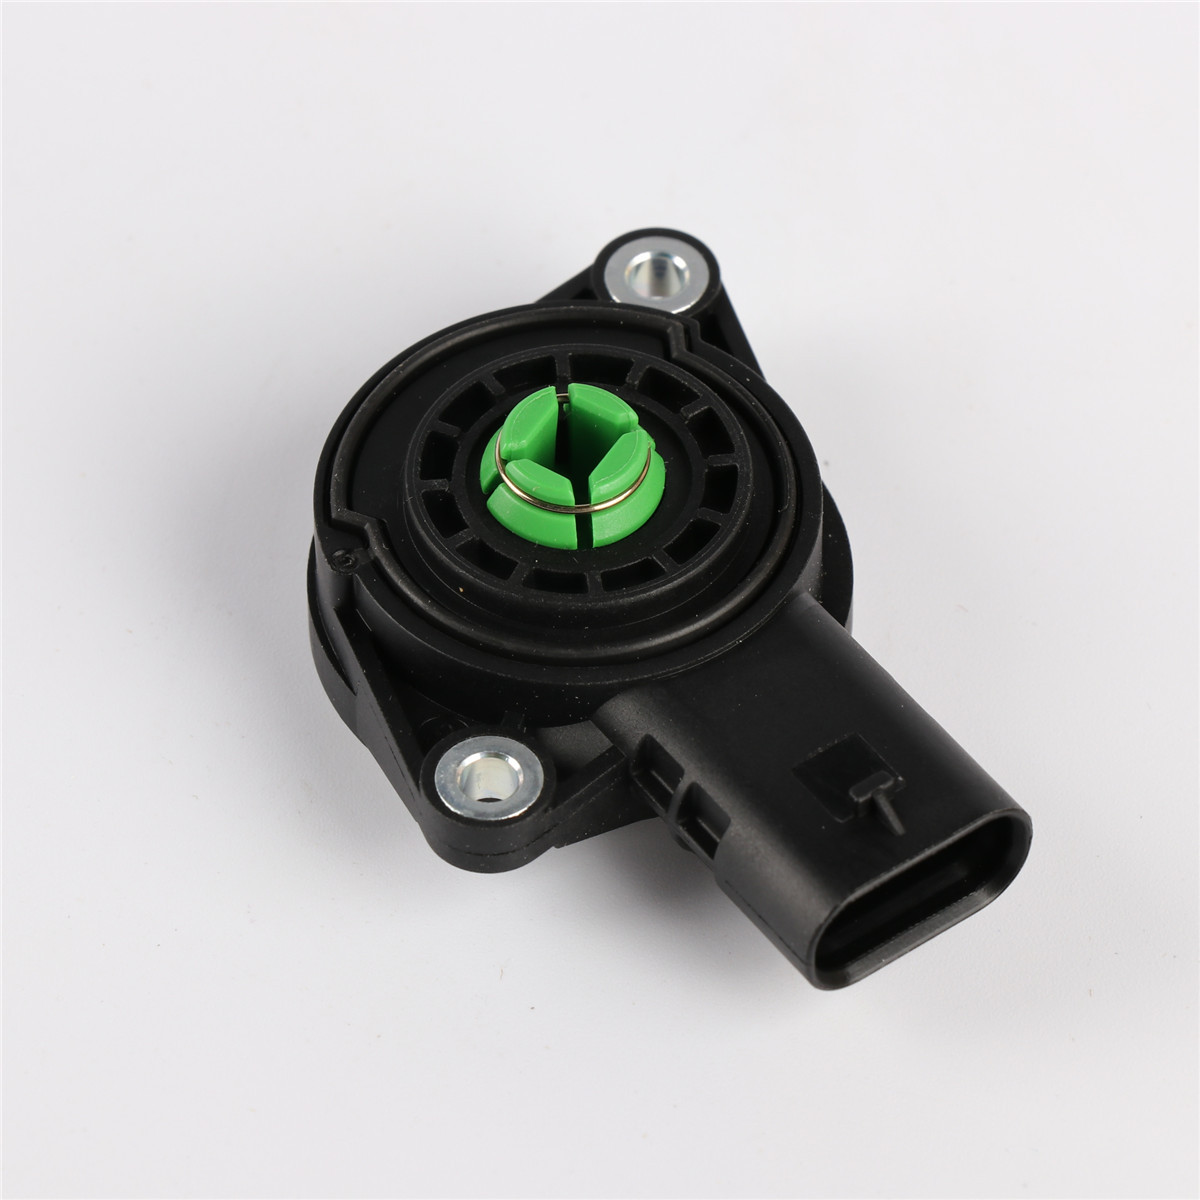 OEM 1Pcs Air Intake Manifold Swing Angle Sensor For Audi VW Passat B6 B7 CC Golf Jetta MK6 07L 907 386 B цены